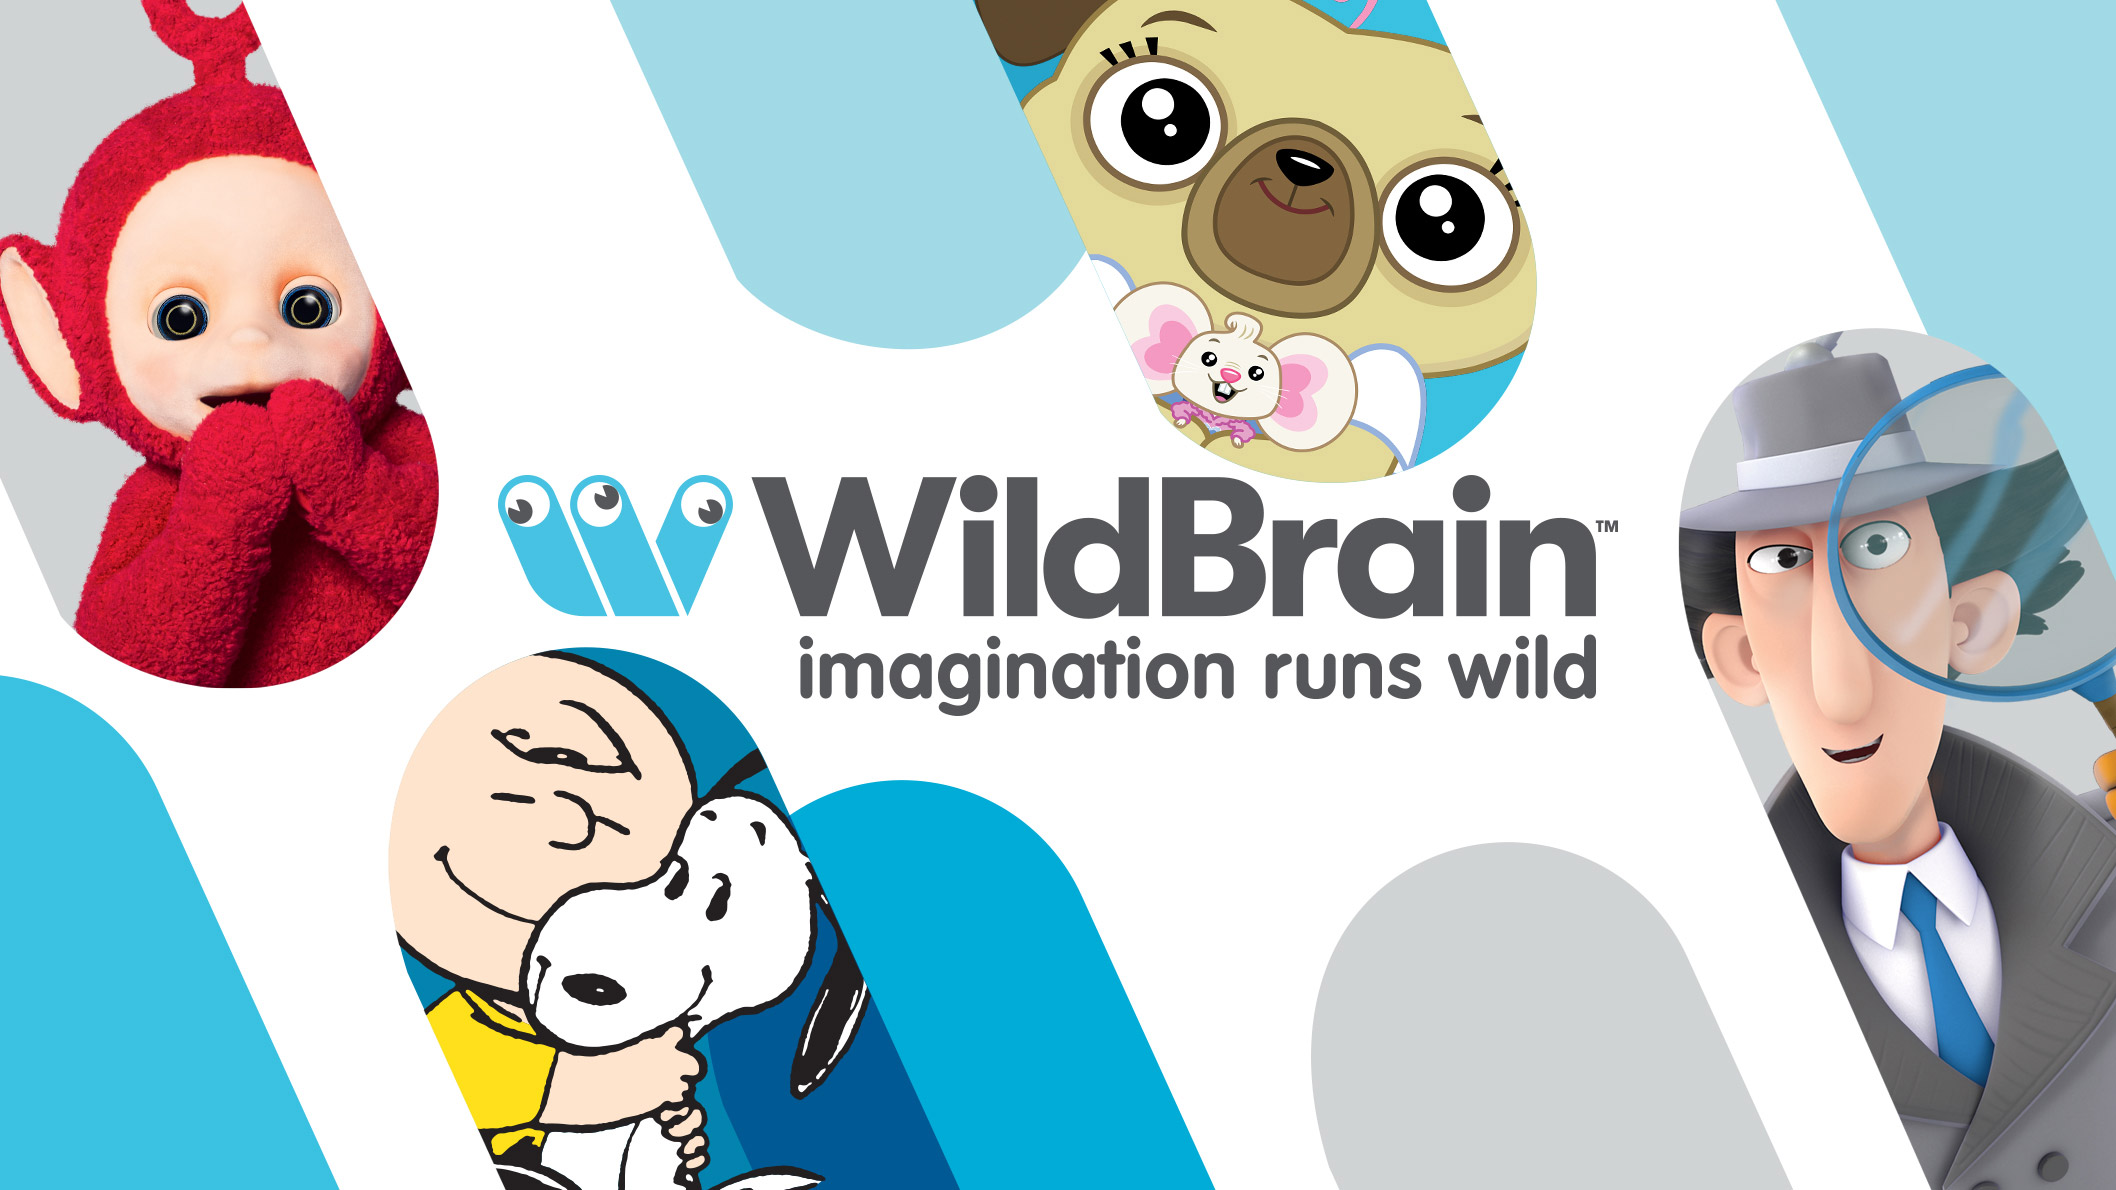 A white background with the WildBrain logo and a text that says Imagination Runs Wild, in the middle. There are blue shapes sticking out from the corners of the image, with different characters in each blue shape.